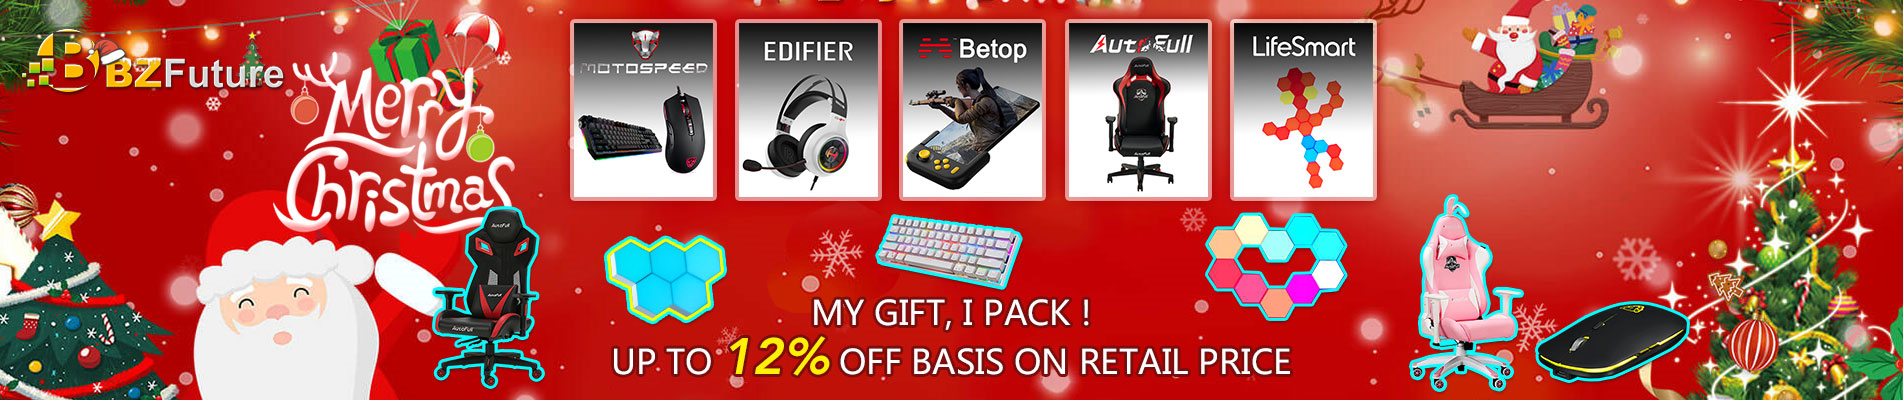 bzfuture gaming setups christmas sale